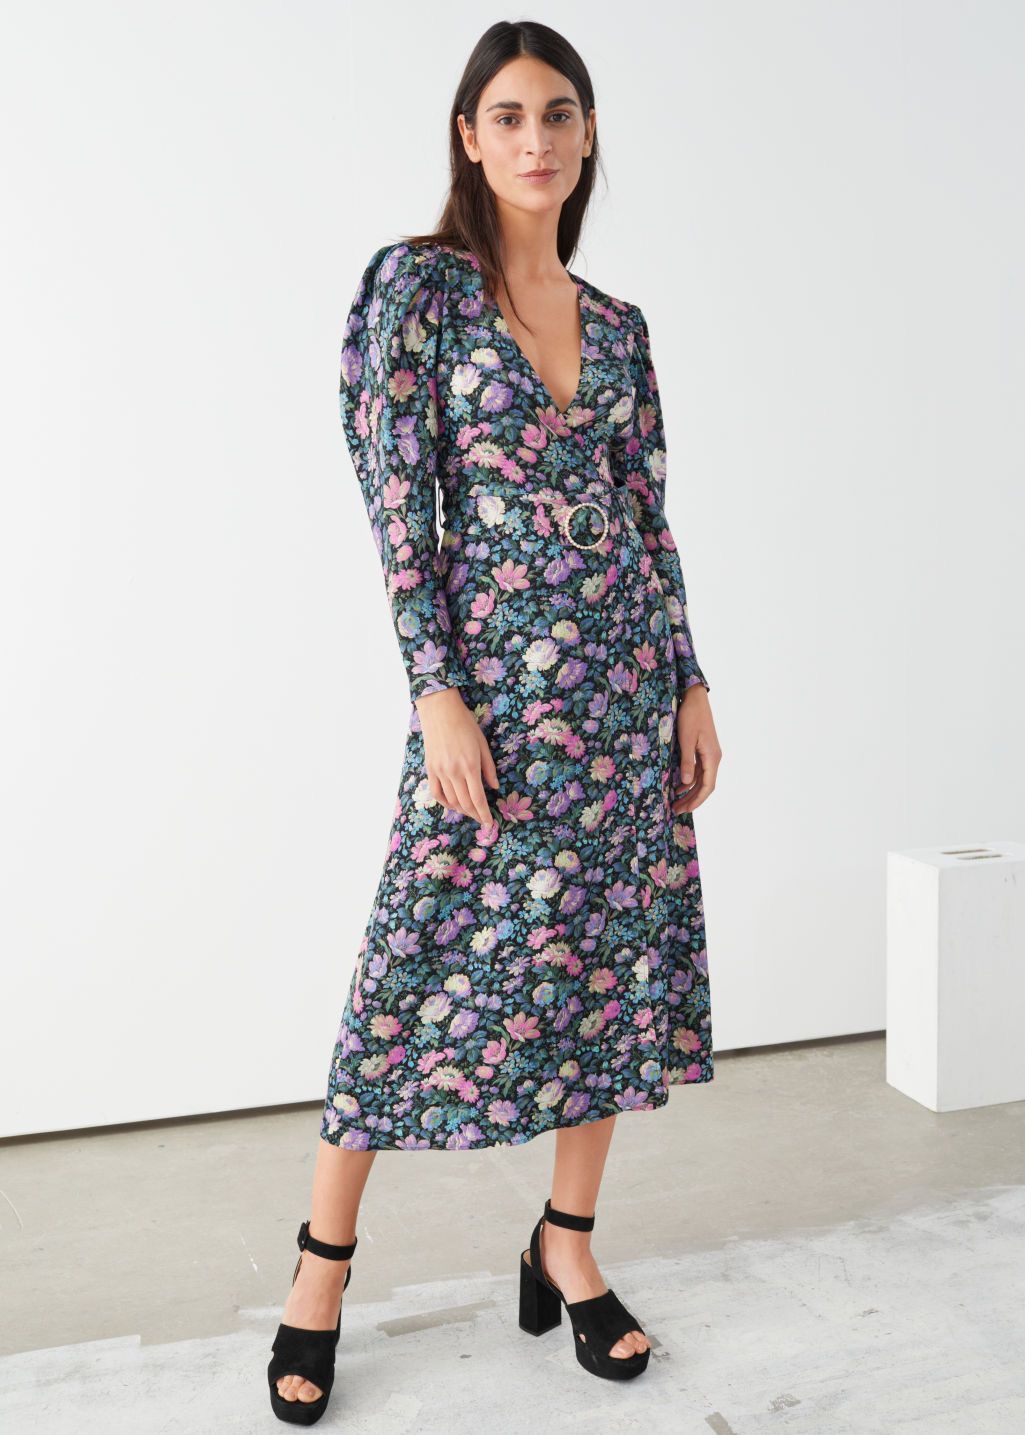 , Fall 2020 Lookbook: Here are the Dresses you NEED to get for your closet, Outdressing